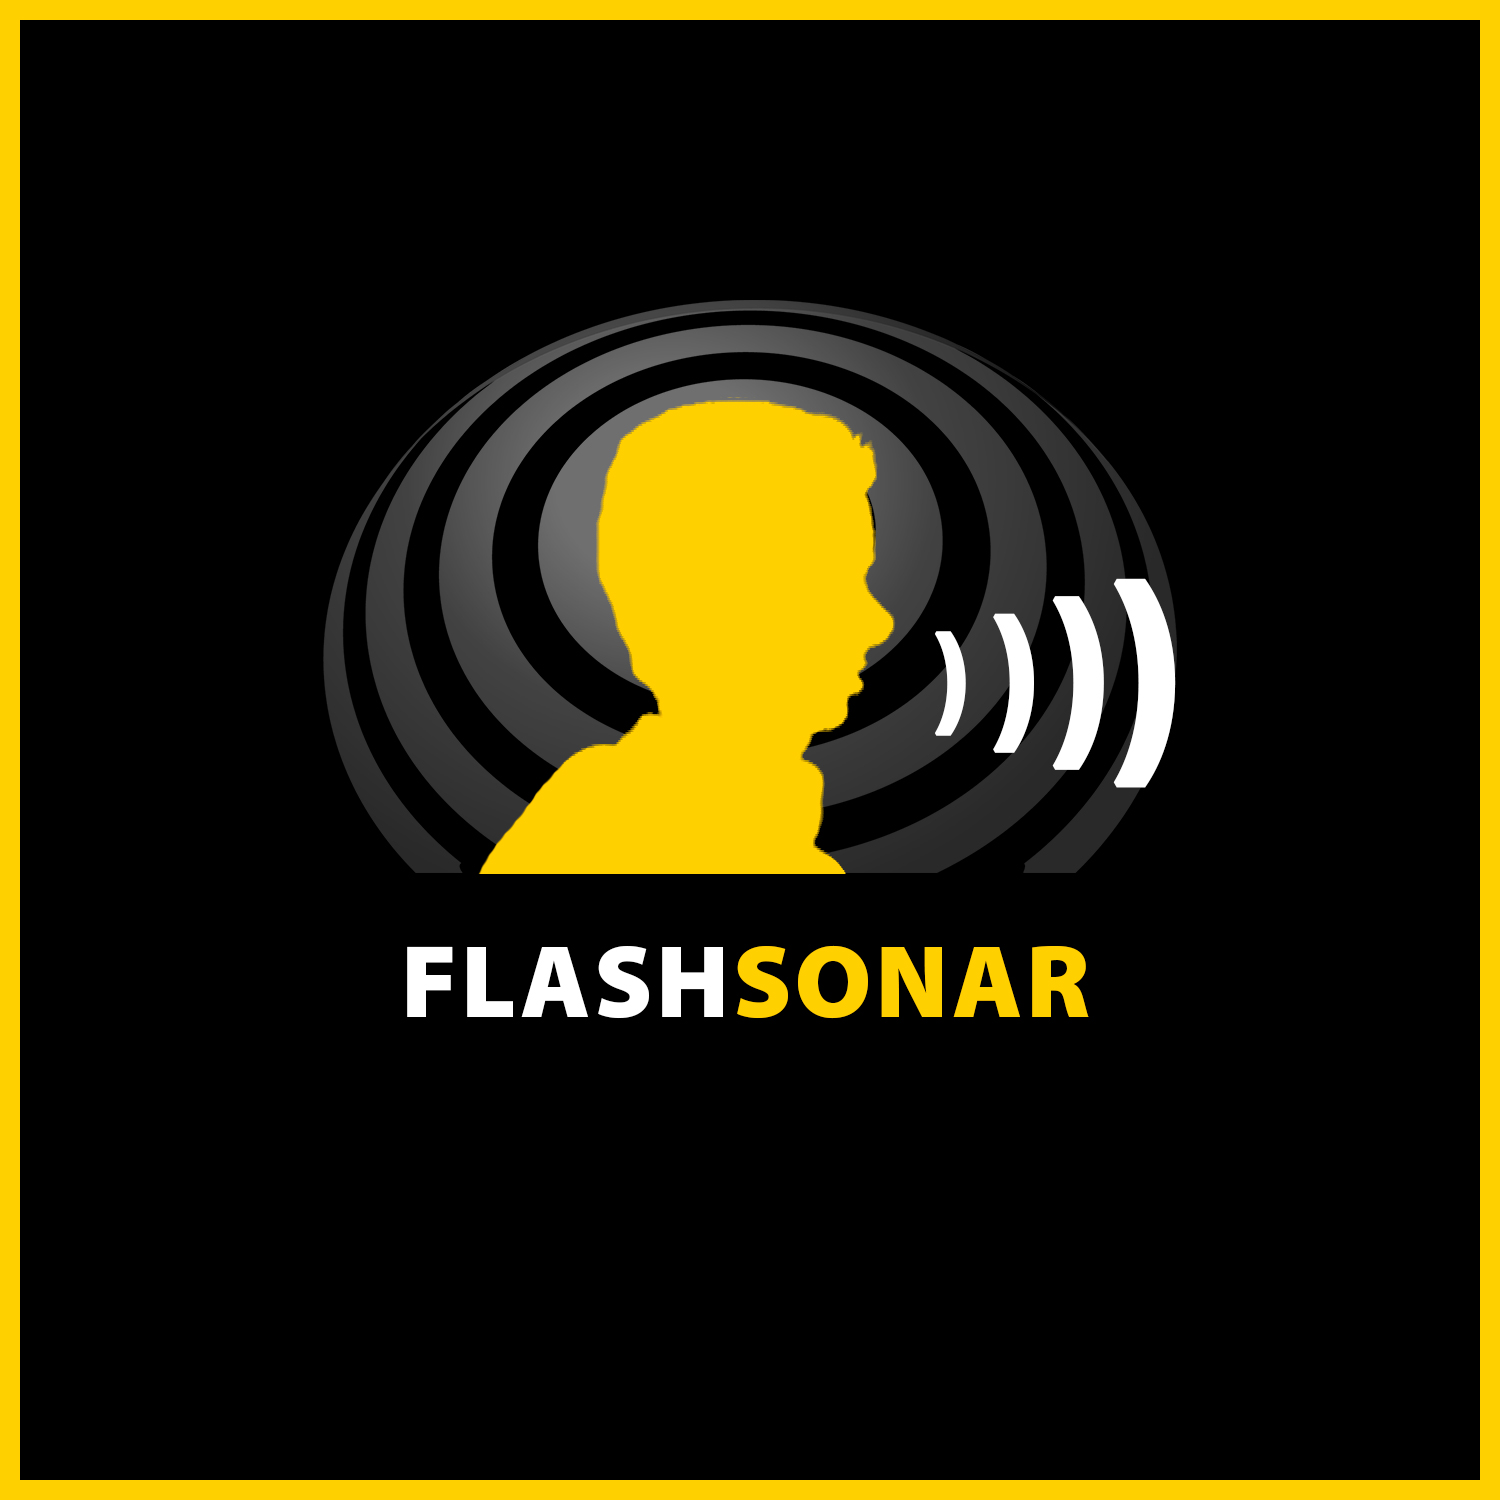 FlashSonar icon consisting of a yellow side silhouette of the head of Daniel Kish sending out small sonar waves by clicking his tongue set against a gradient grey set of reflecting sonar waves emanating from a circular center.